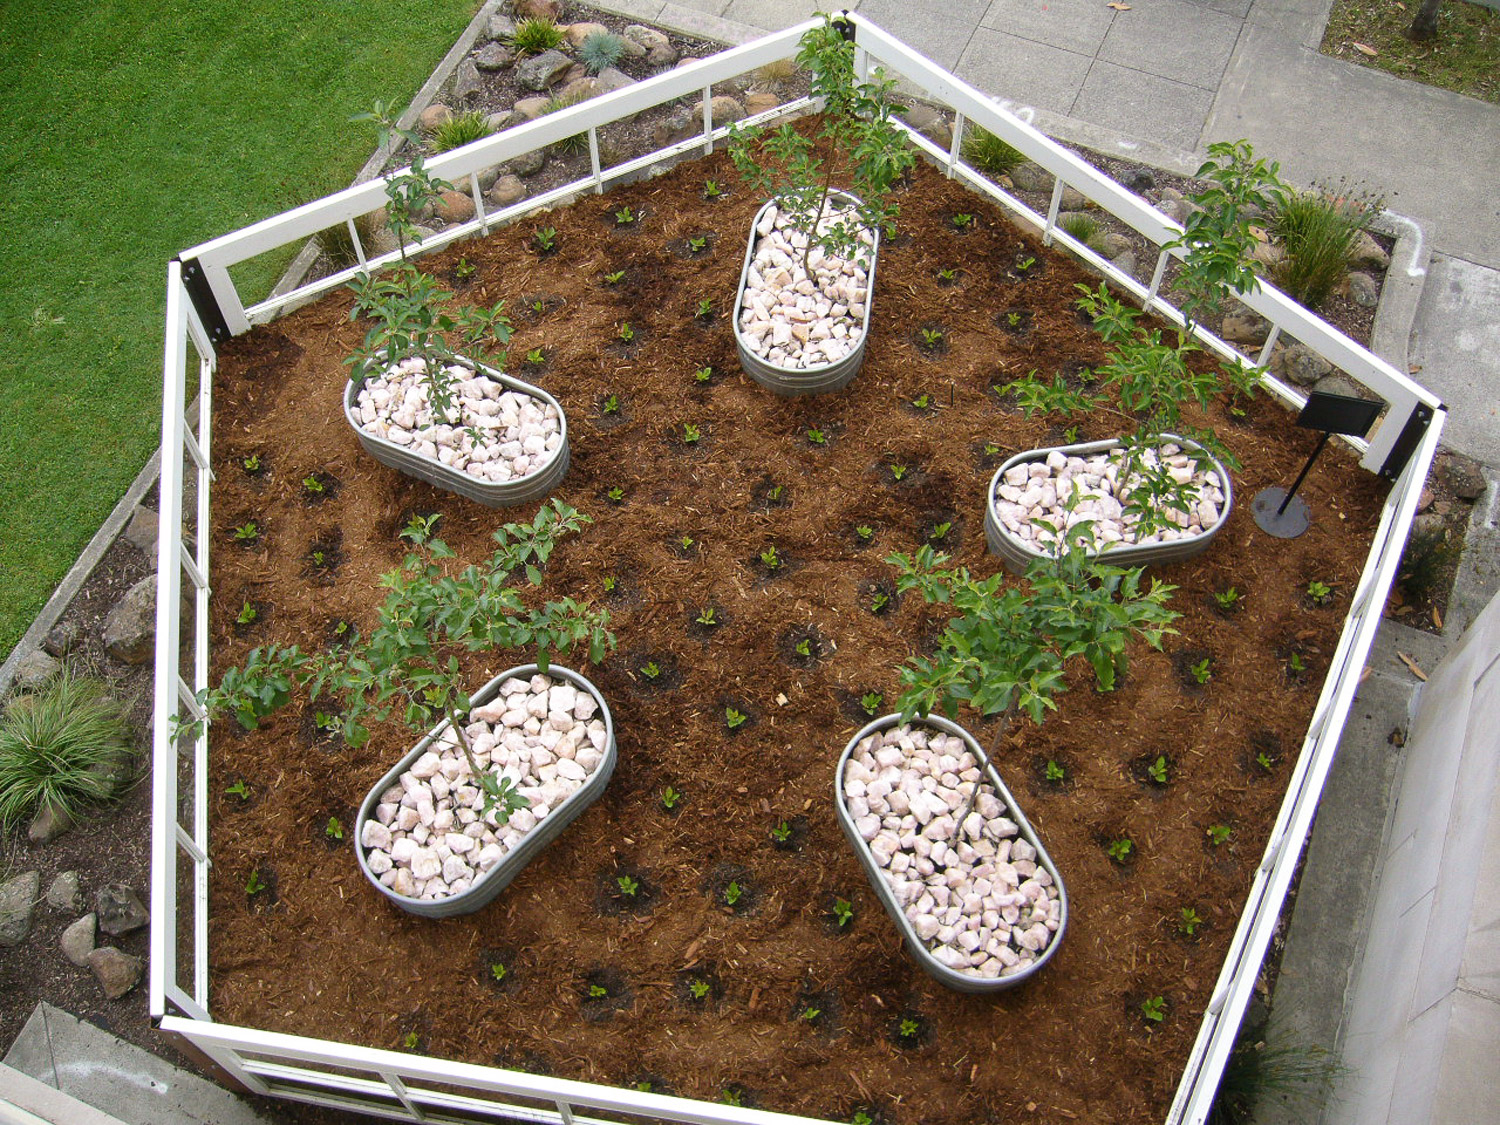 "SWEET SURVIVAL   2006-2008 .  Sonoma County Museum, Santa Rosa     CA  One year outdoor installation re biodiversity; multiple stakeholder     participation. Including Santa Rosa Jr. College staff and students & local     ""apple"" groups. Salvaged 11' hotel doors, soil, native plants, wild & local     apple trees."